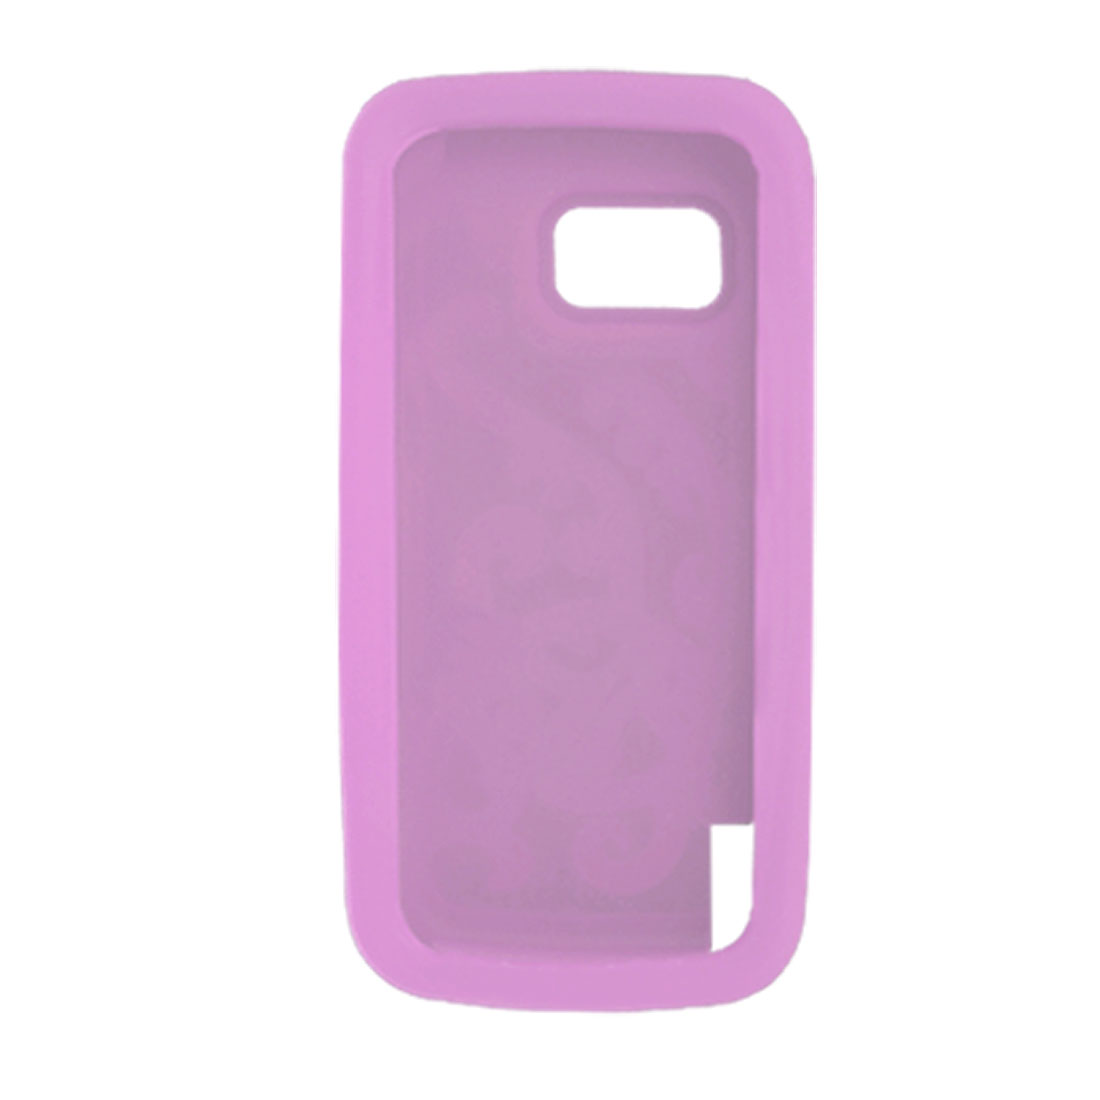 Orchid Nonslip Soft Silicone Skin Case Cover for Nokia 5800